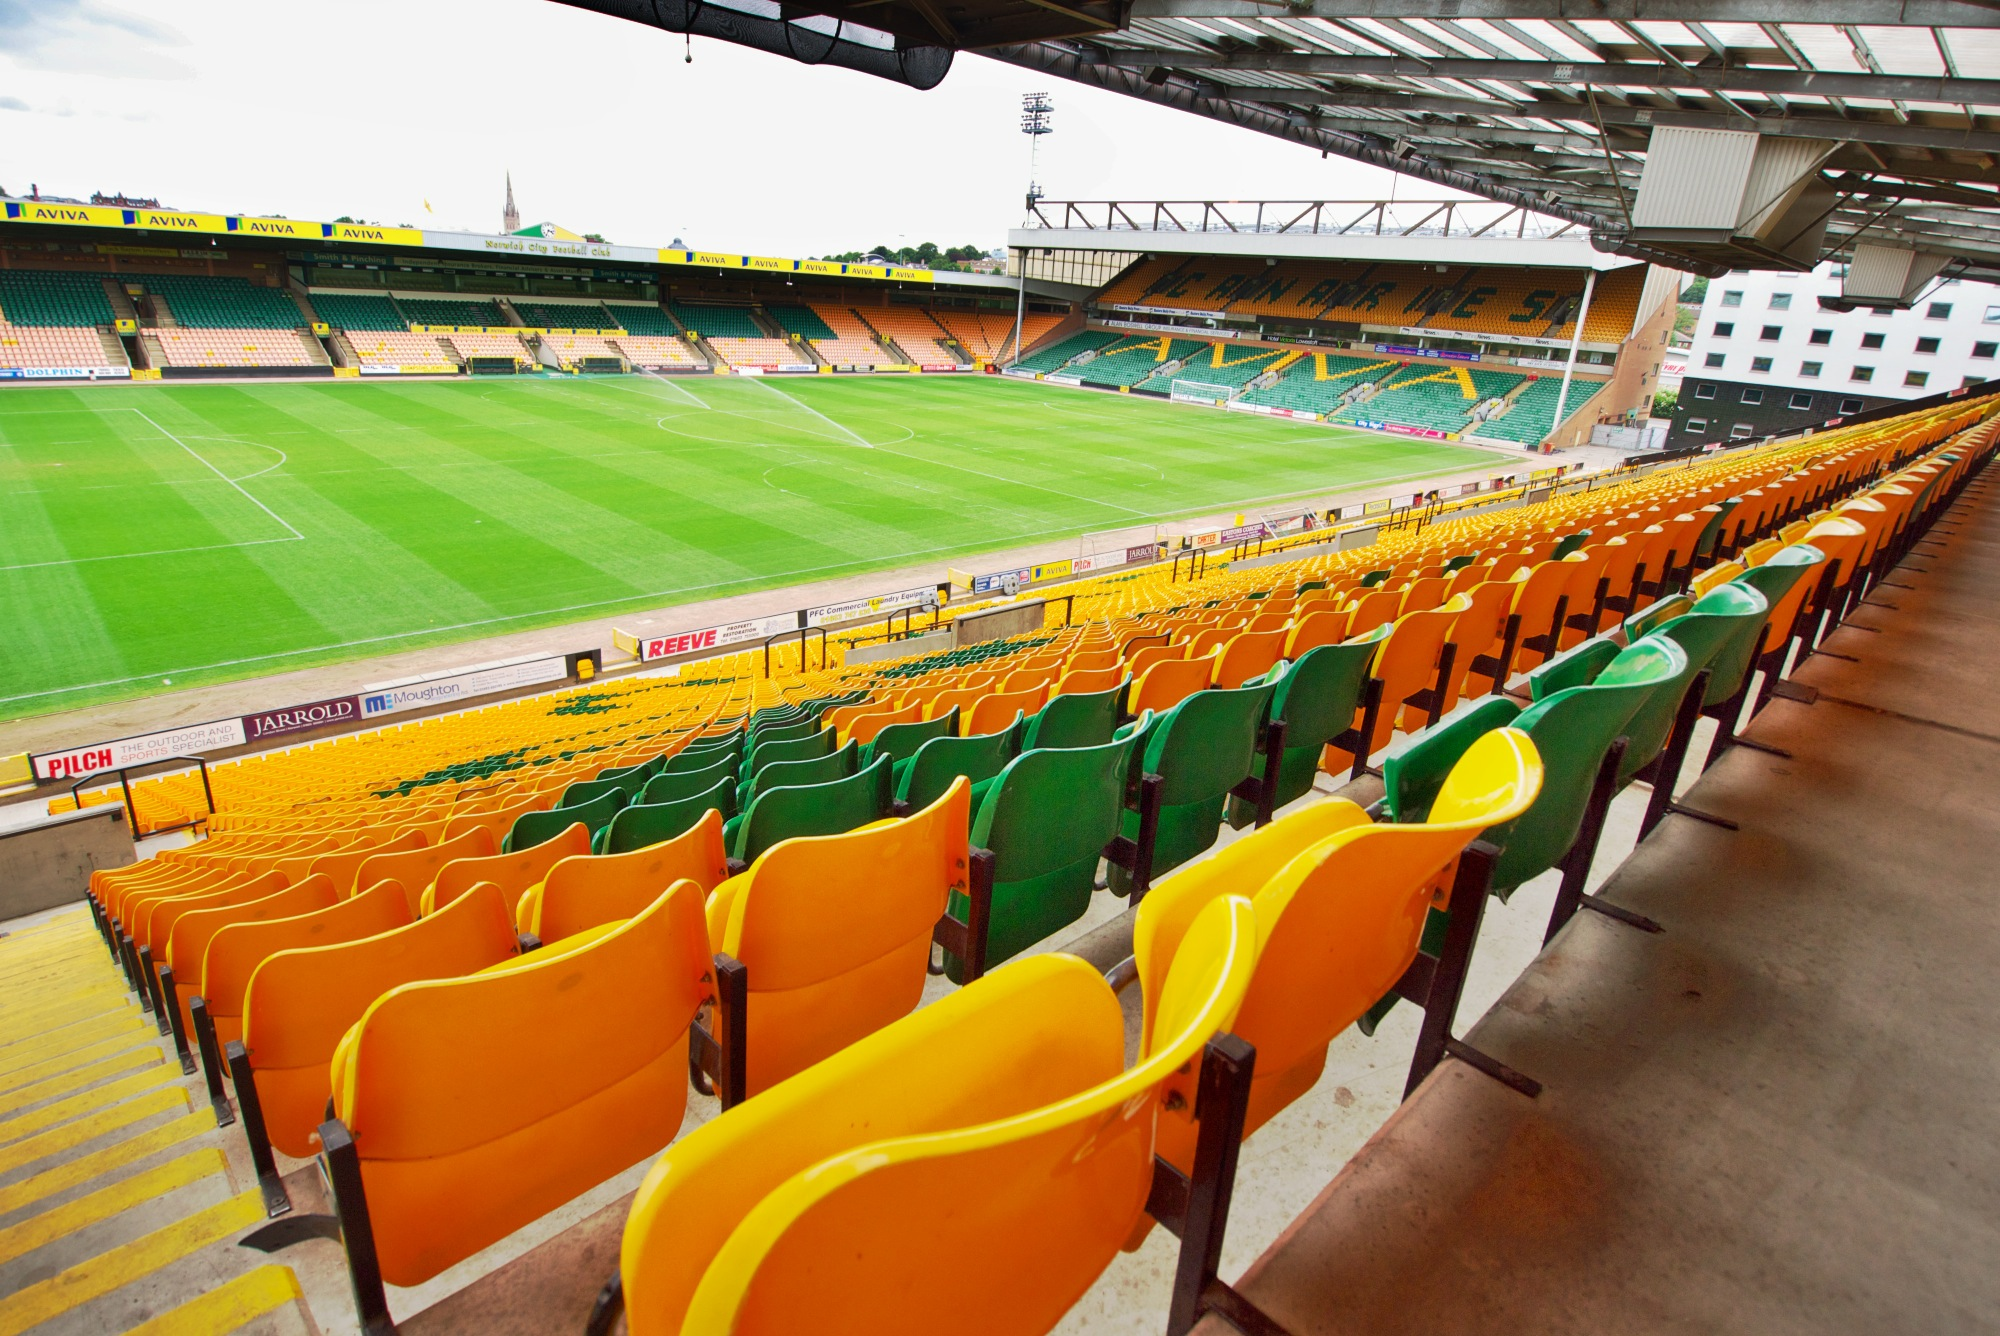 Carrow Road. Photo, Pittaya Sroiliong, Flickr.